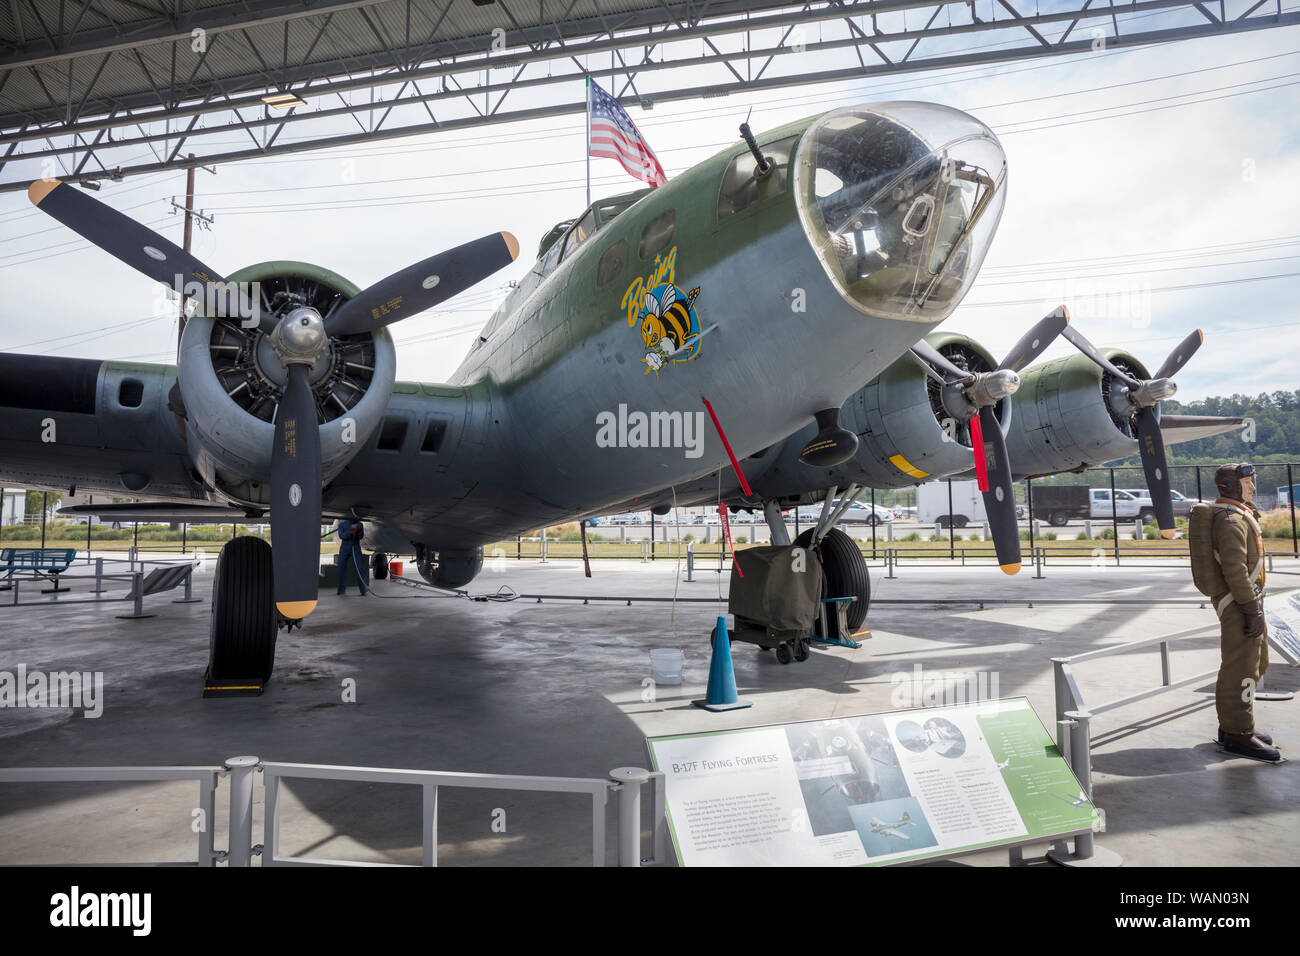 Boeing B-17 Flying Fortress is a four-engined heavy bomber, Boeing Museum of Flight, Boeing Field, Tukwila, Washington State, USA Stock Photo